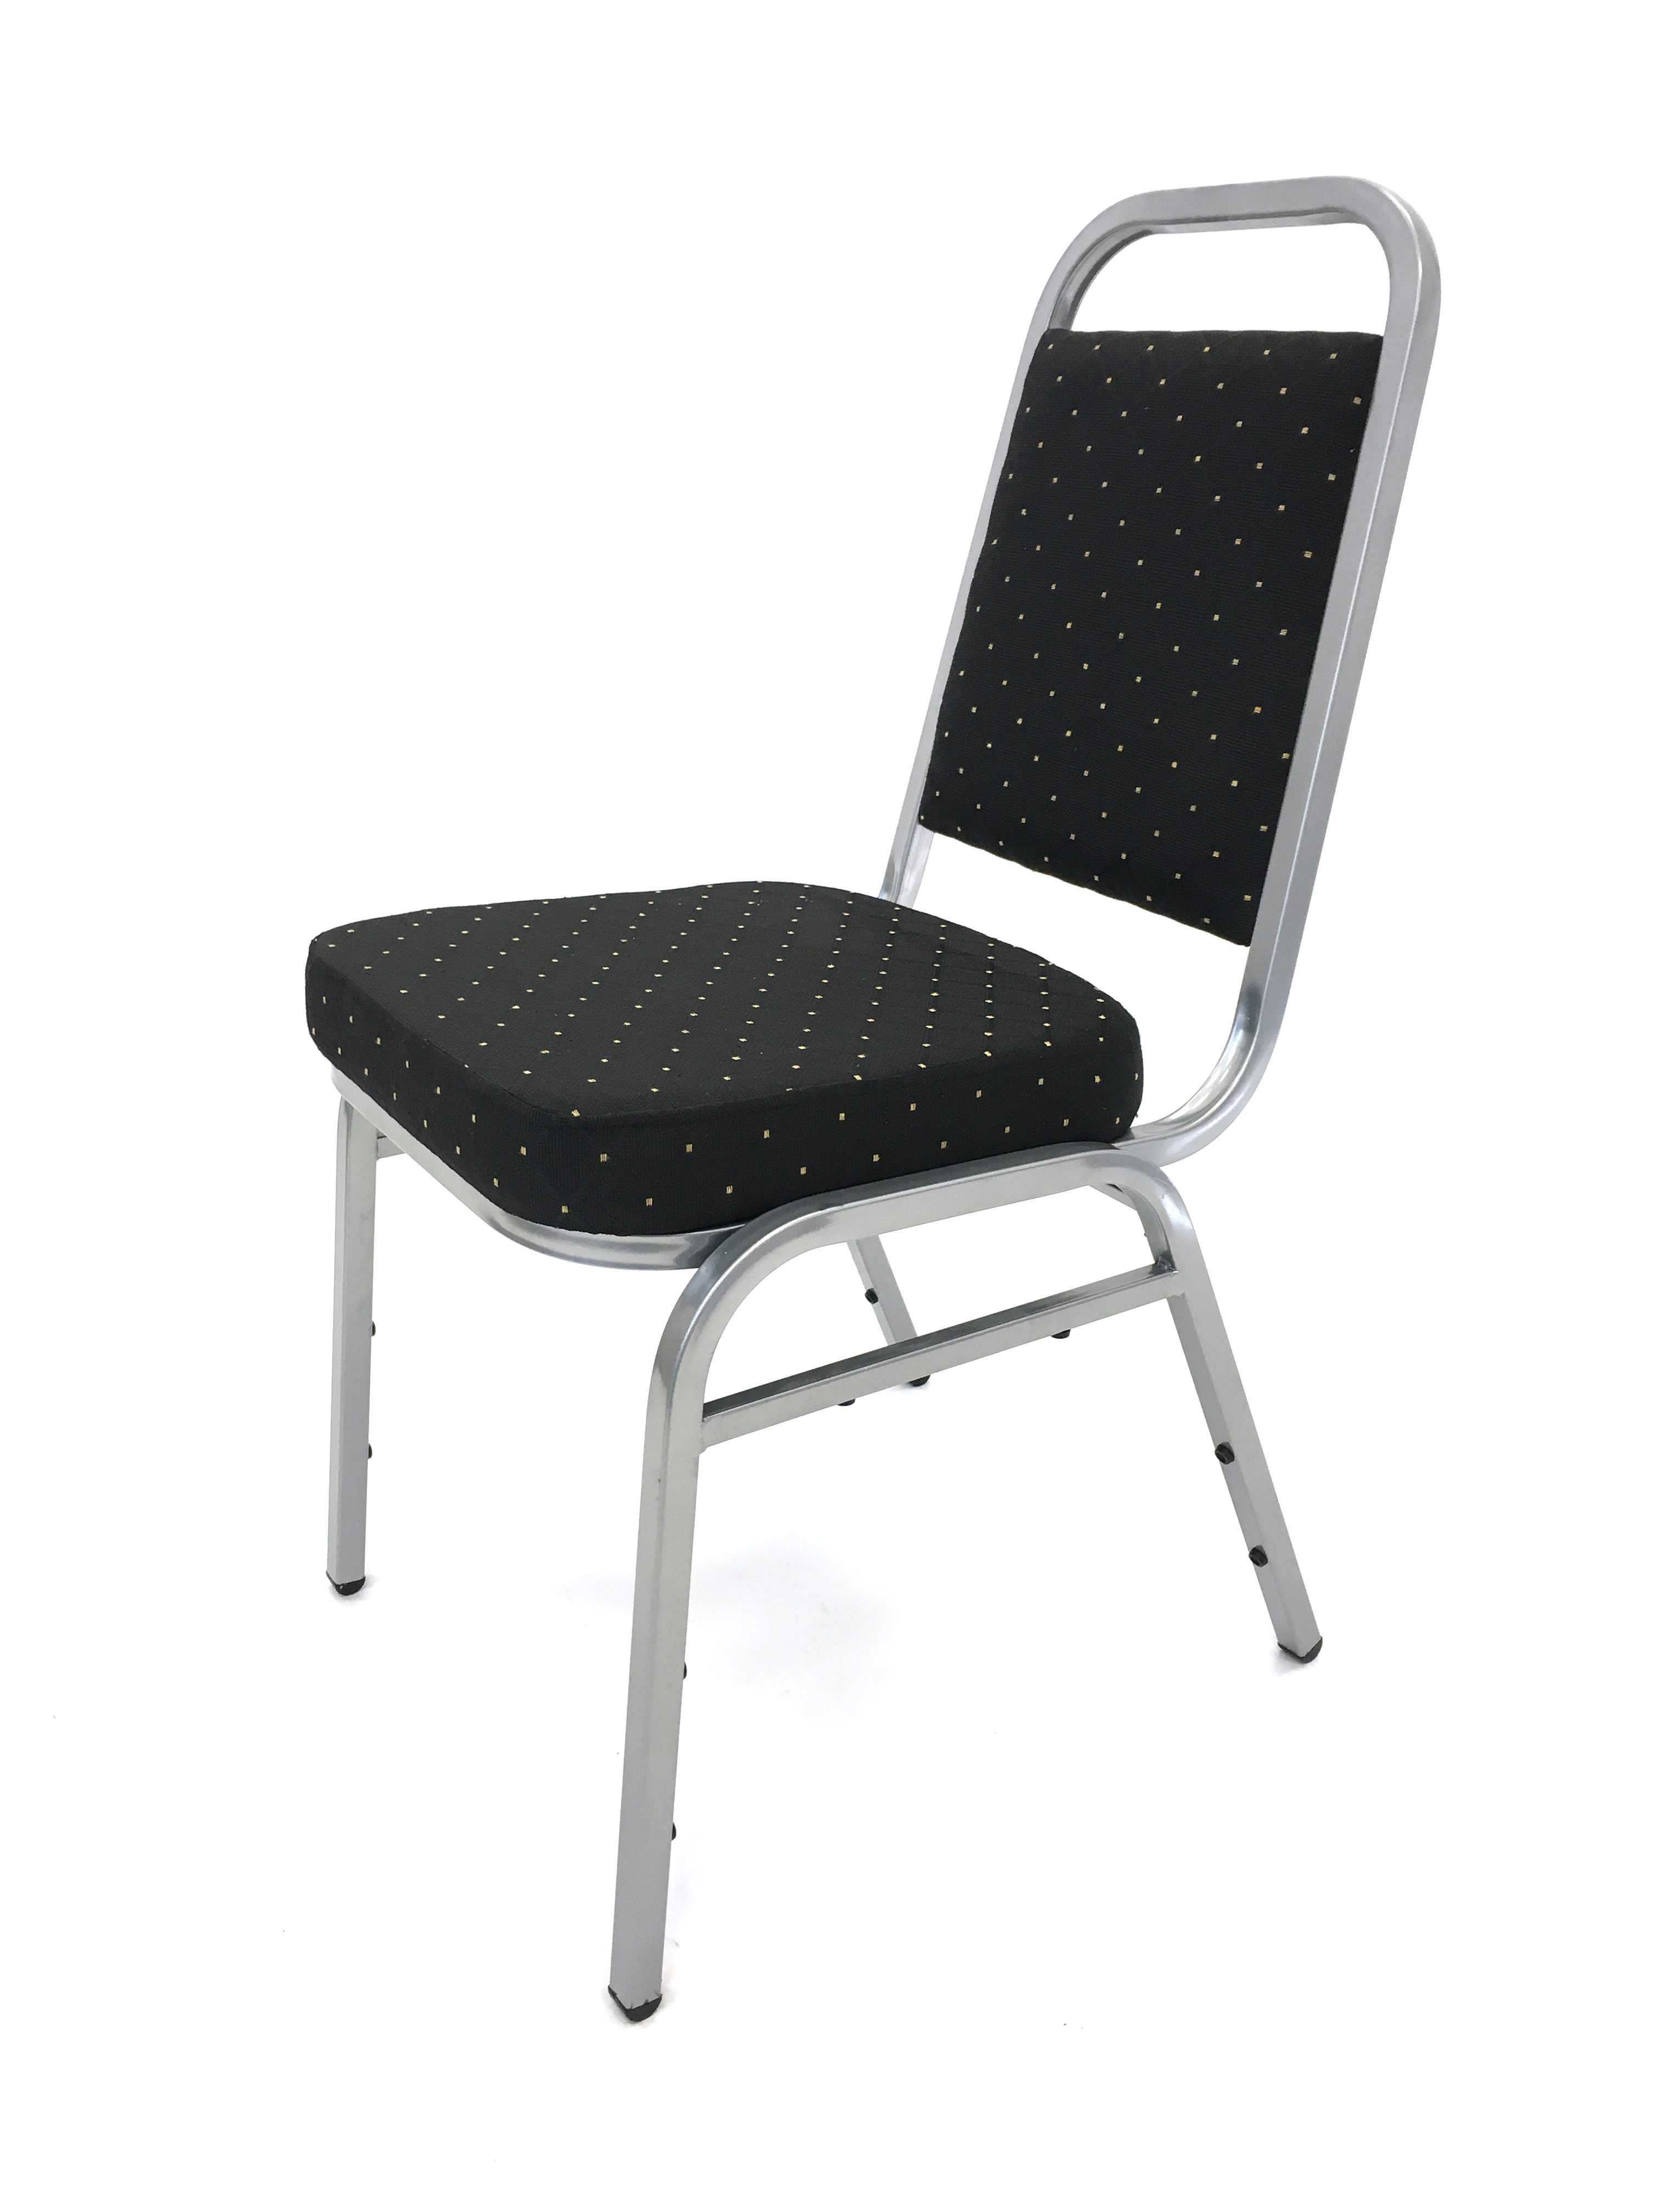 Budget Black & Silver Banqueting Chair Hire - Weddings, Events - BE Event Hire